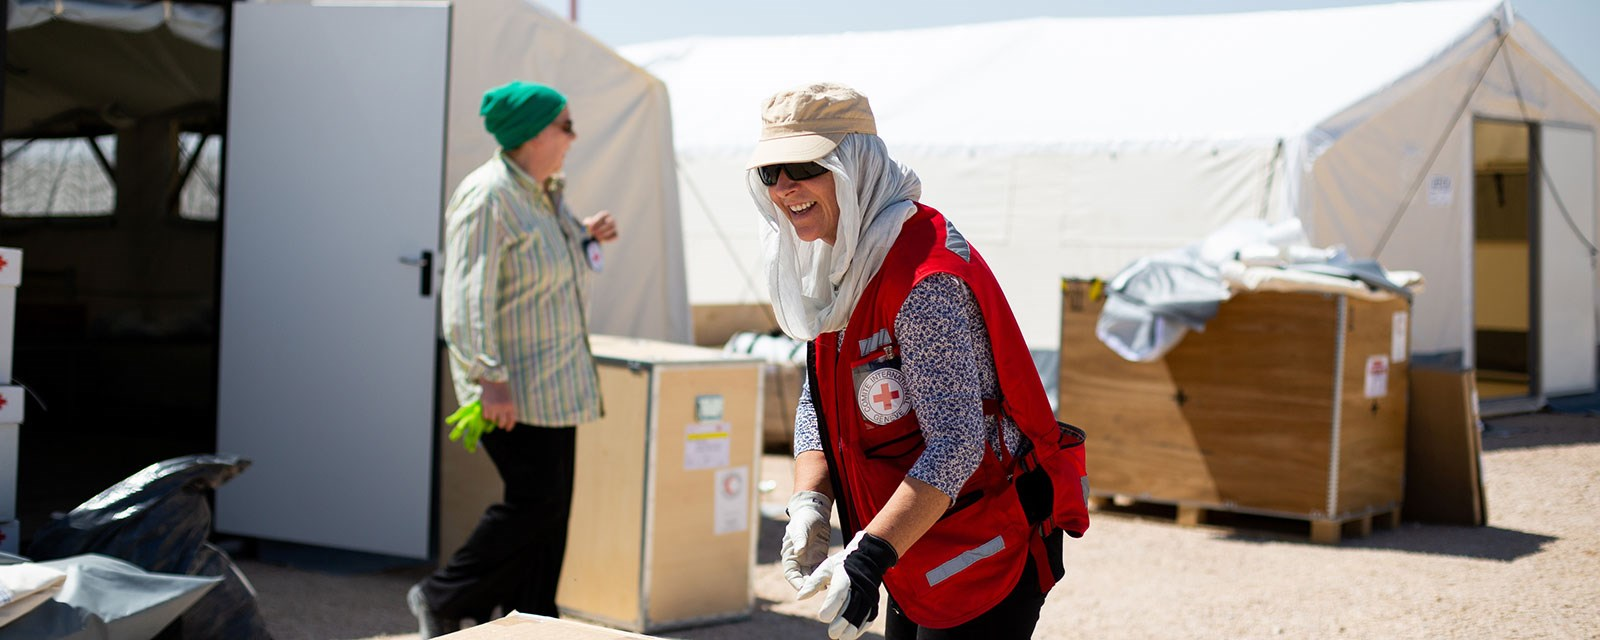 Female ICRC delegate working under burning sun preparing the newly arrived fieldhostpital